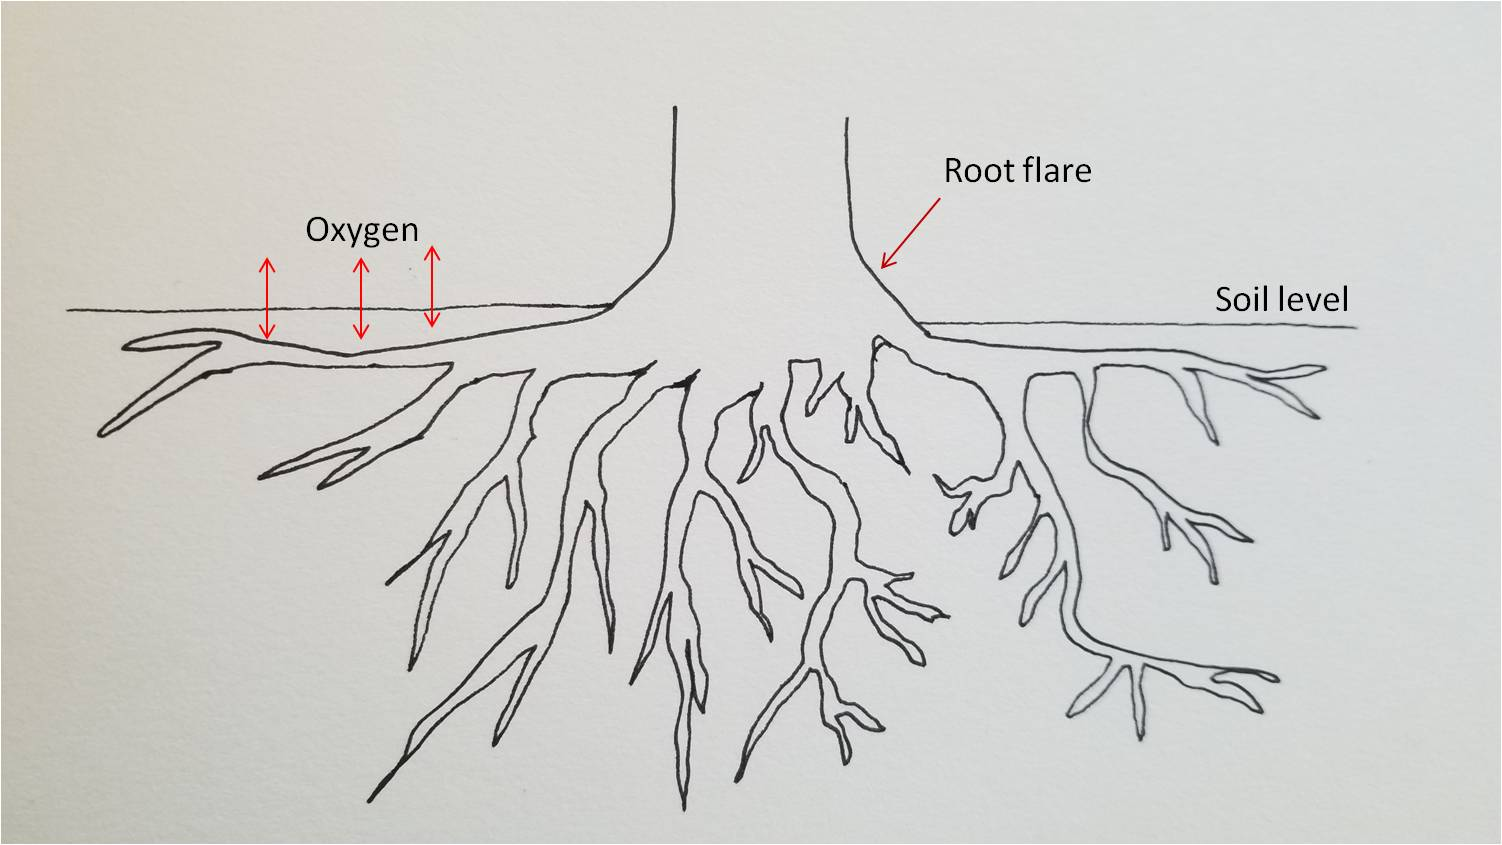 Roots need to access oxygen